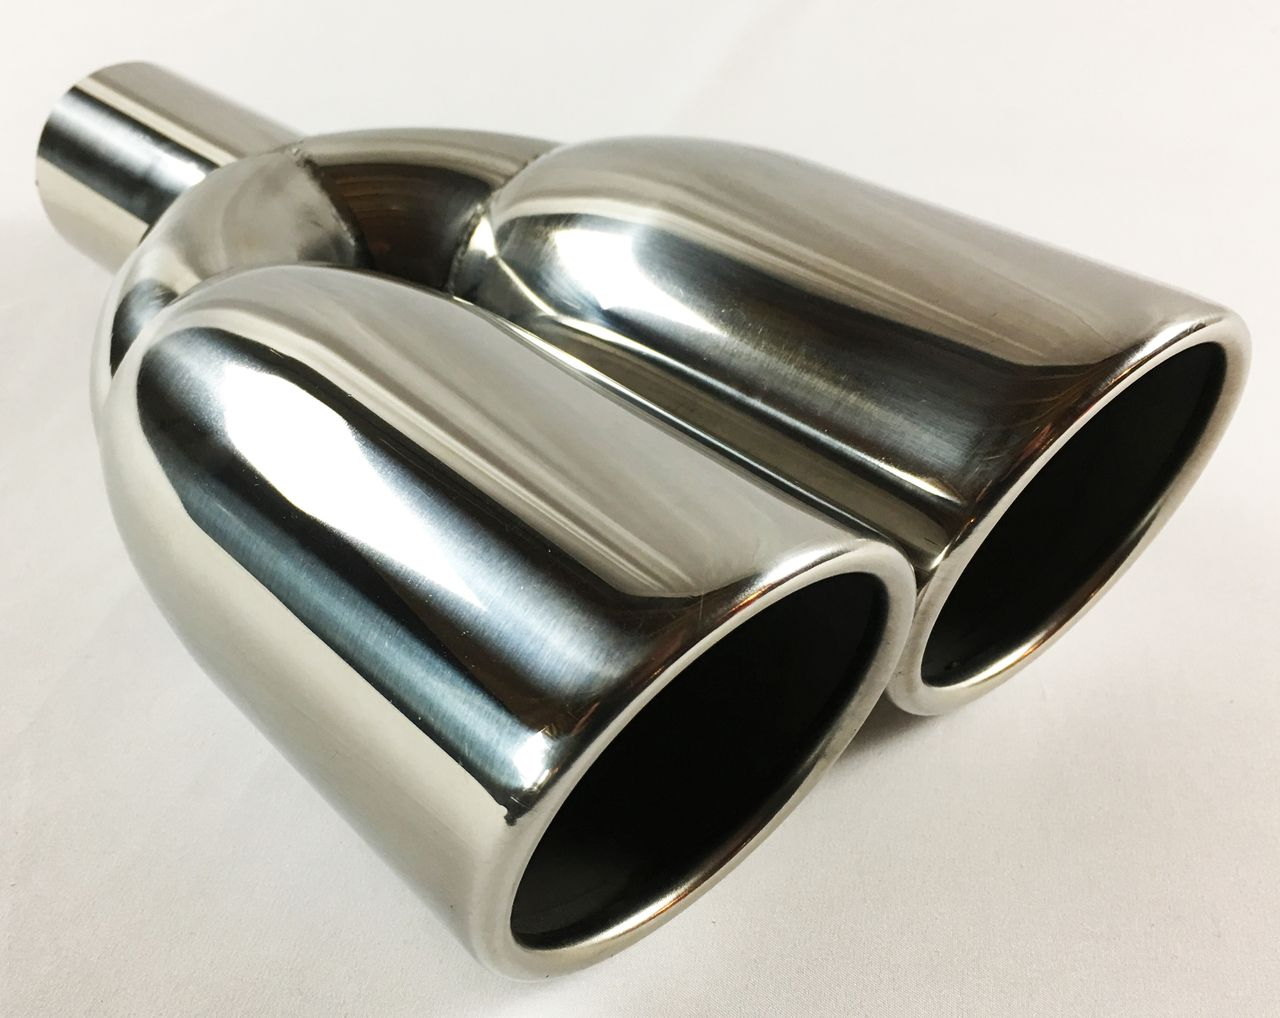 Pin on Exhaust Products For Sale